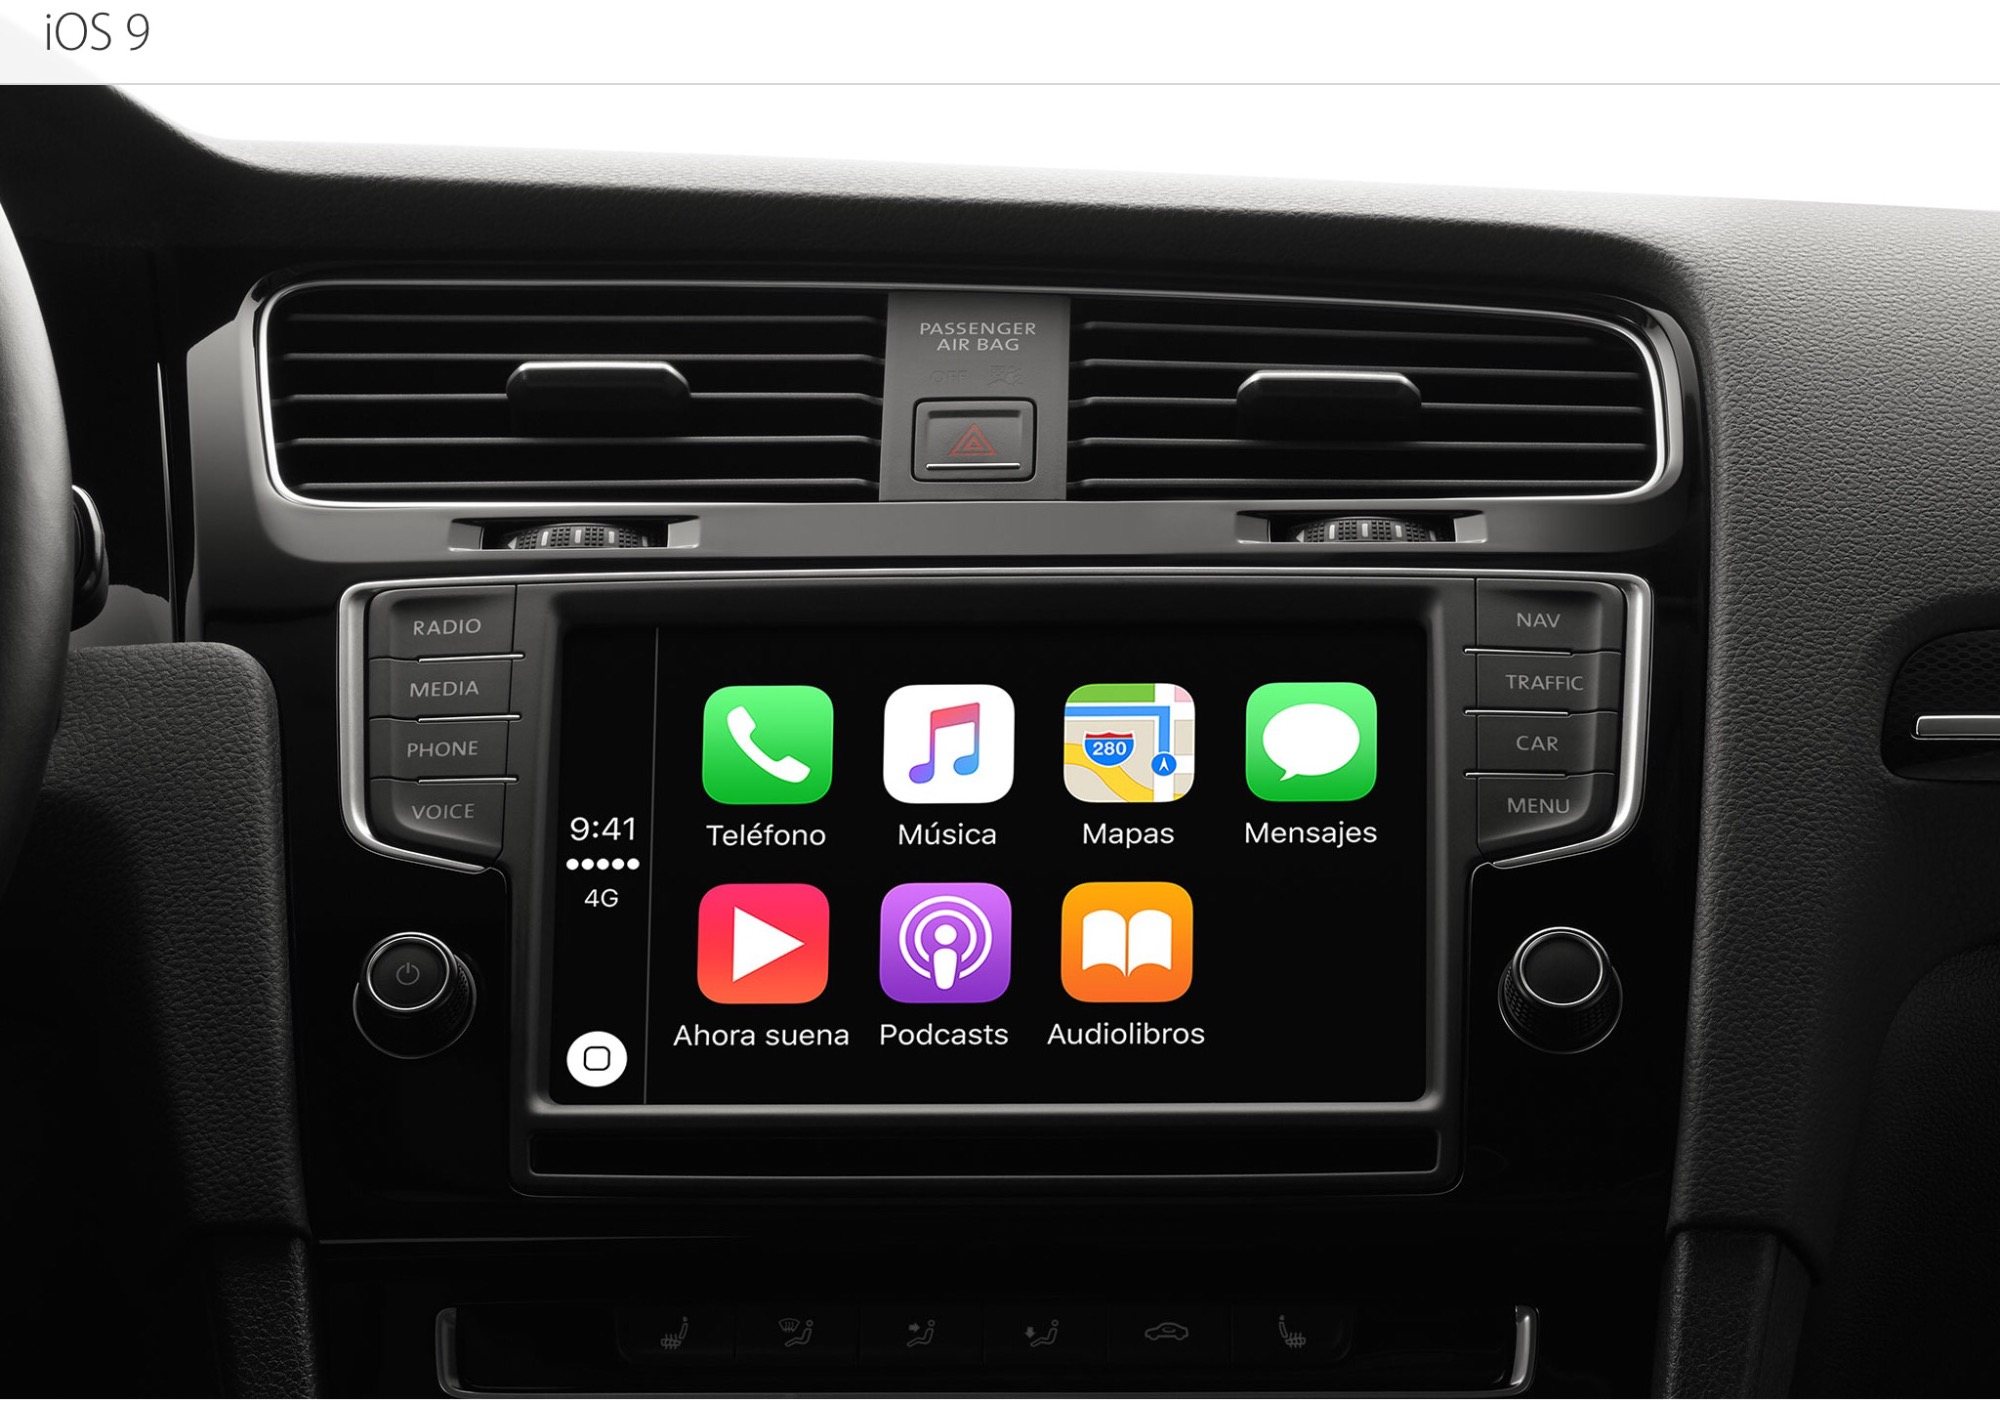 http://hablandodemanzanas.com/sites/default/files/Imagen-Apple-Car%20Play-iOS%209.3.jpg